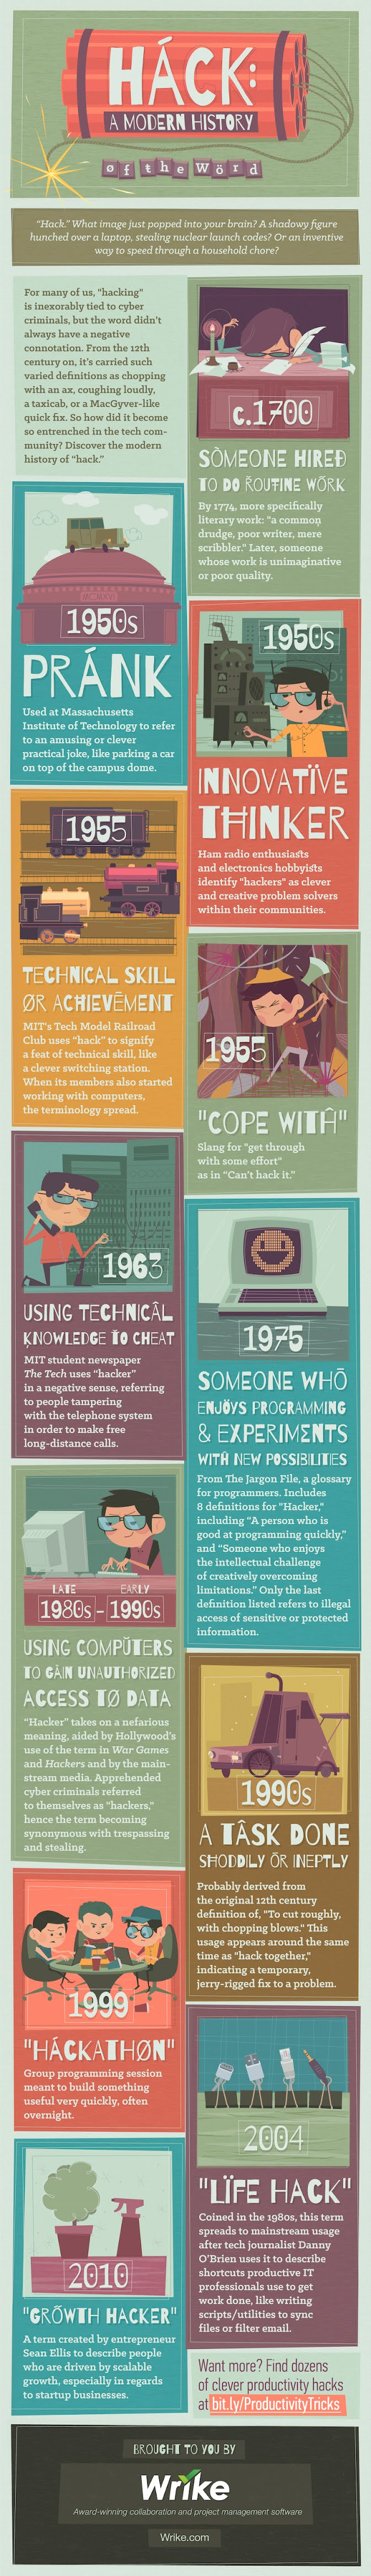 Hack, Hacker, Hacking - Evolution and History of the Word - Infographic